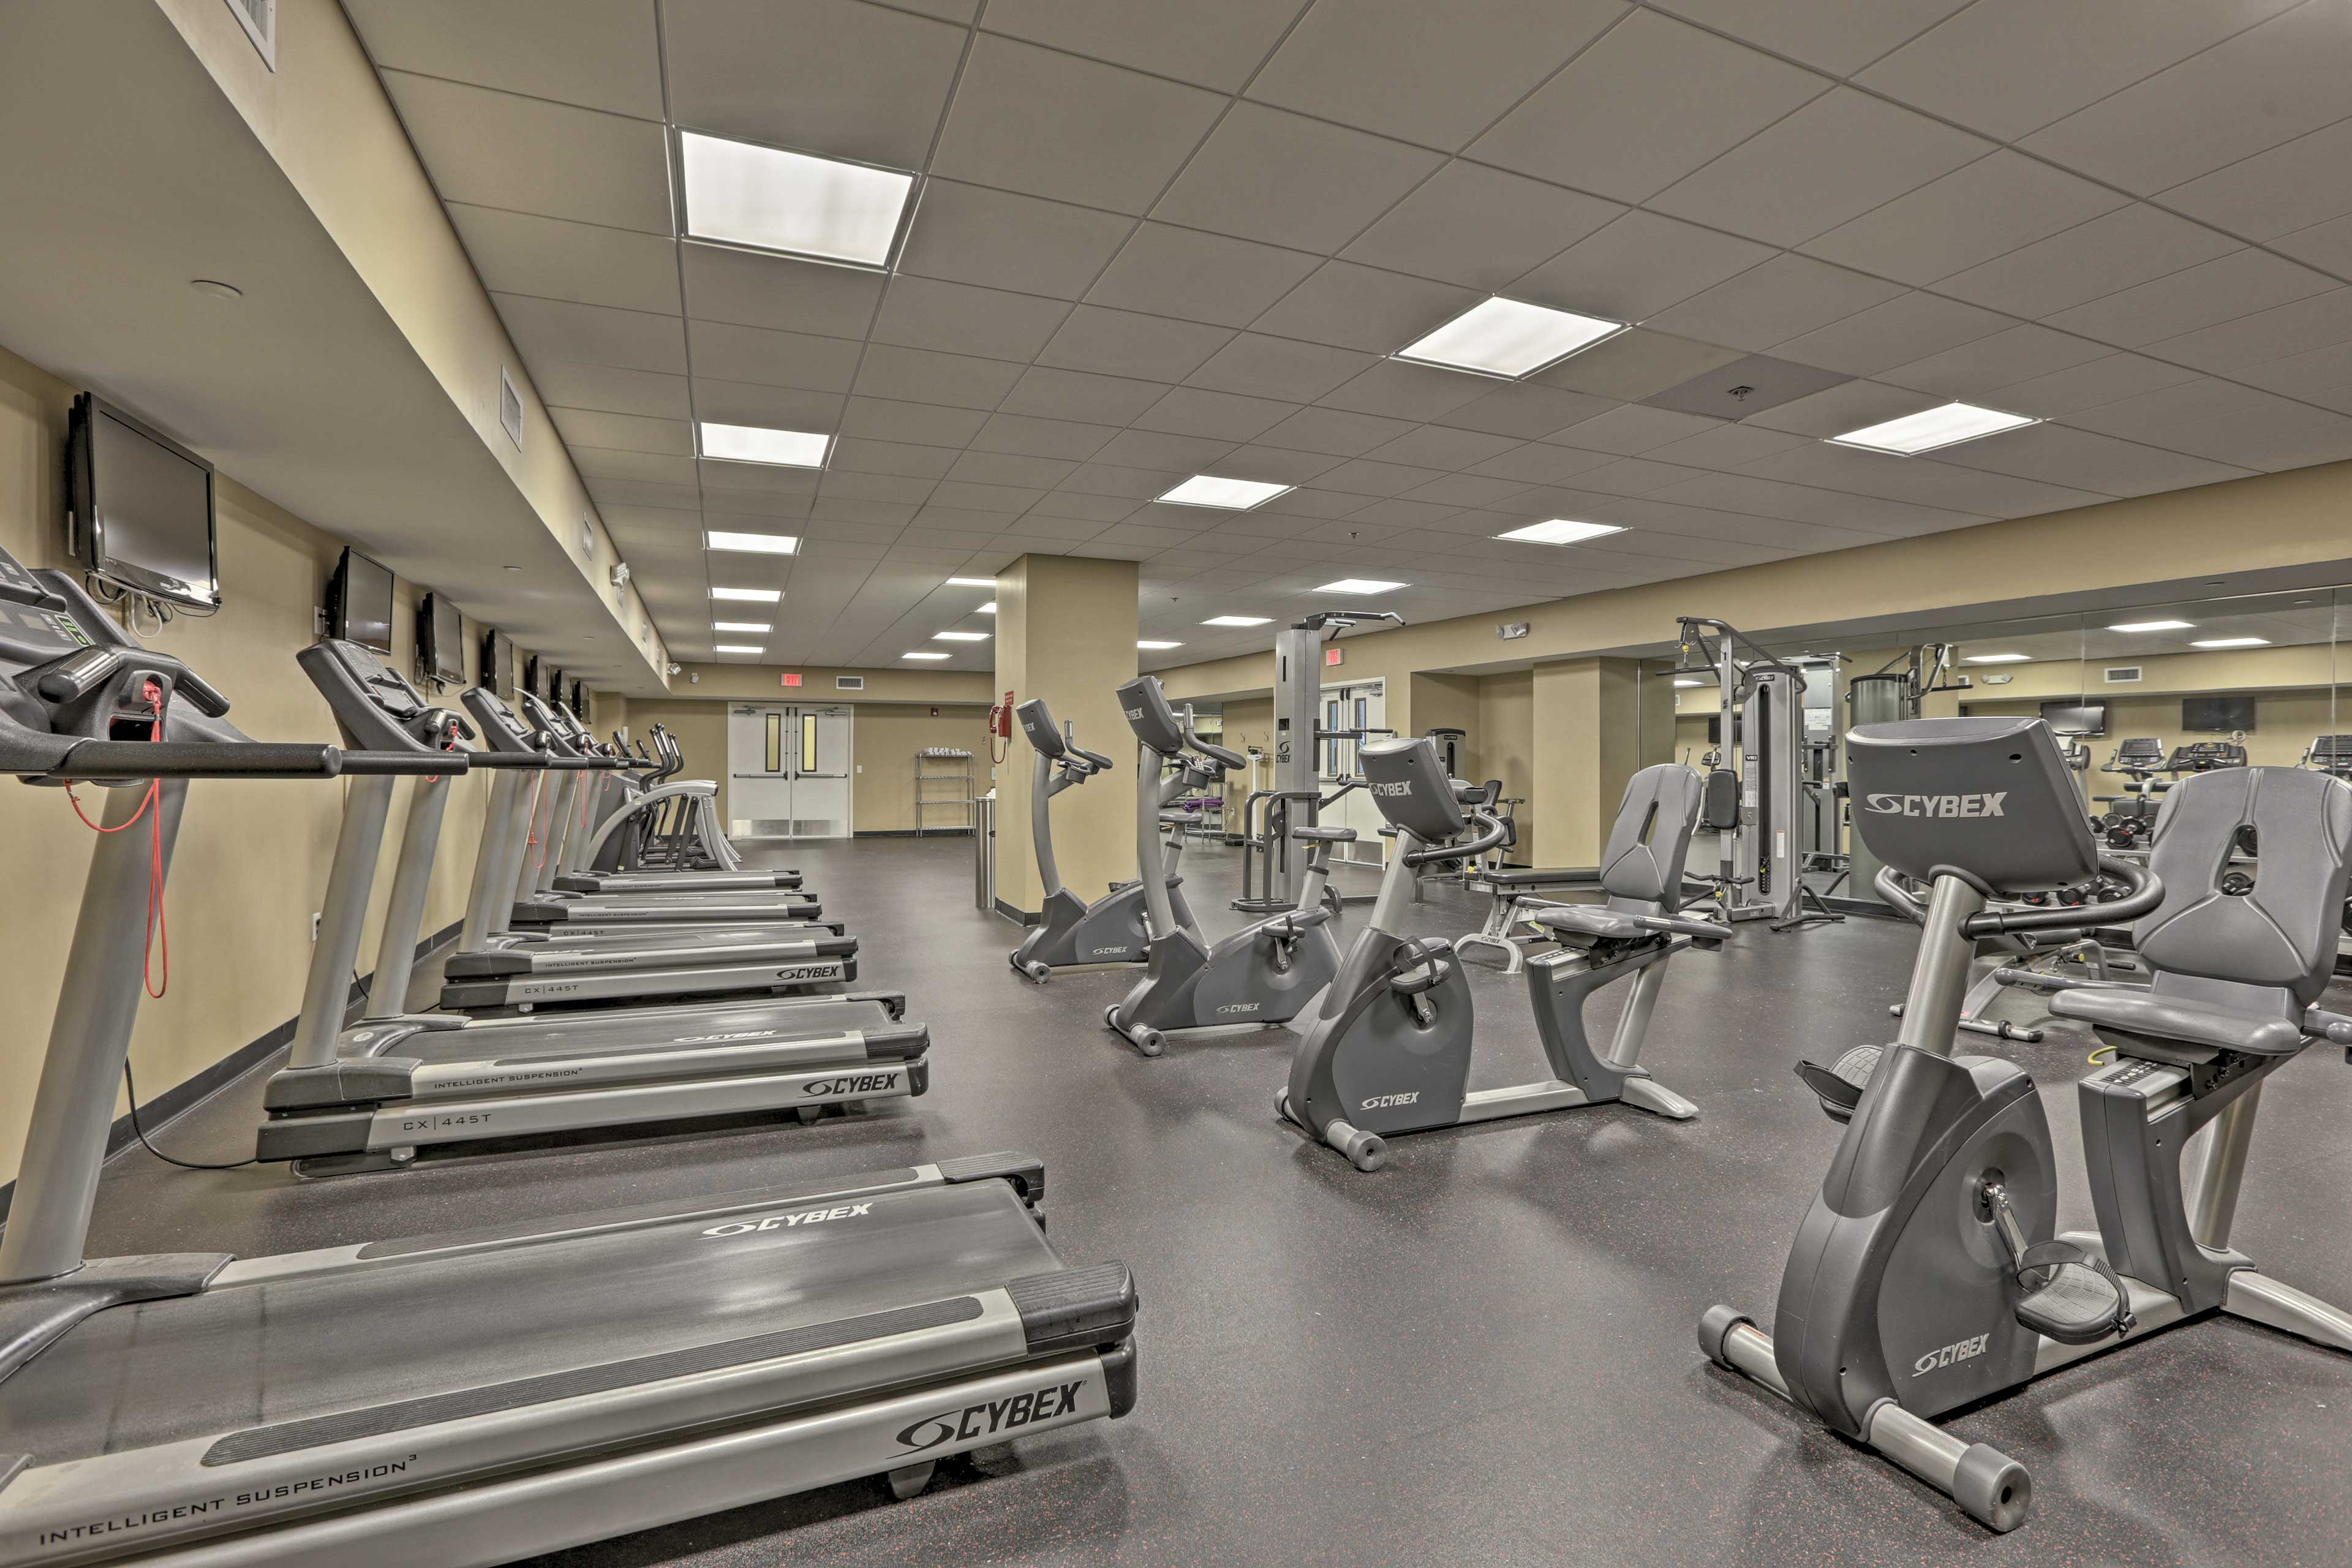 If you'd like to stay fit, get a workout in at the fitness room.